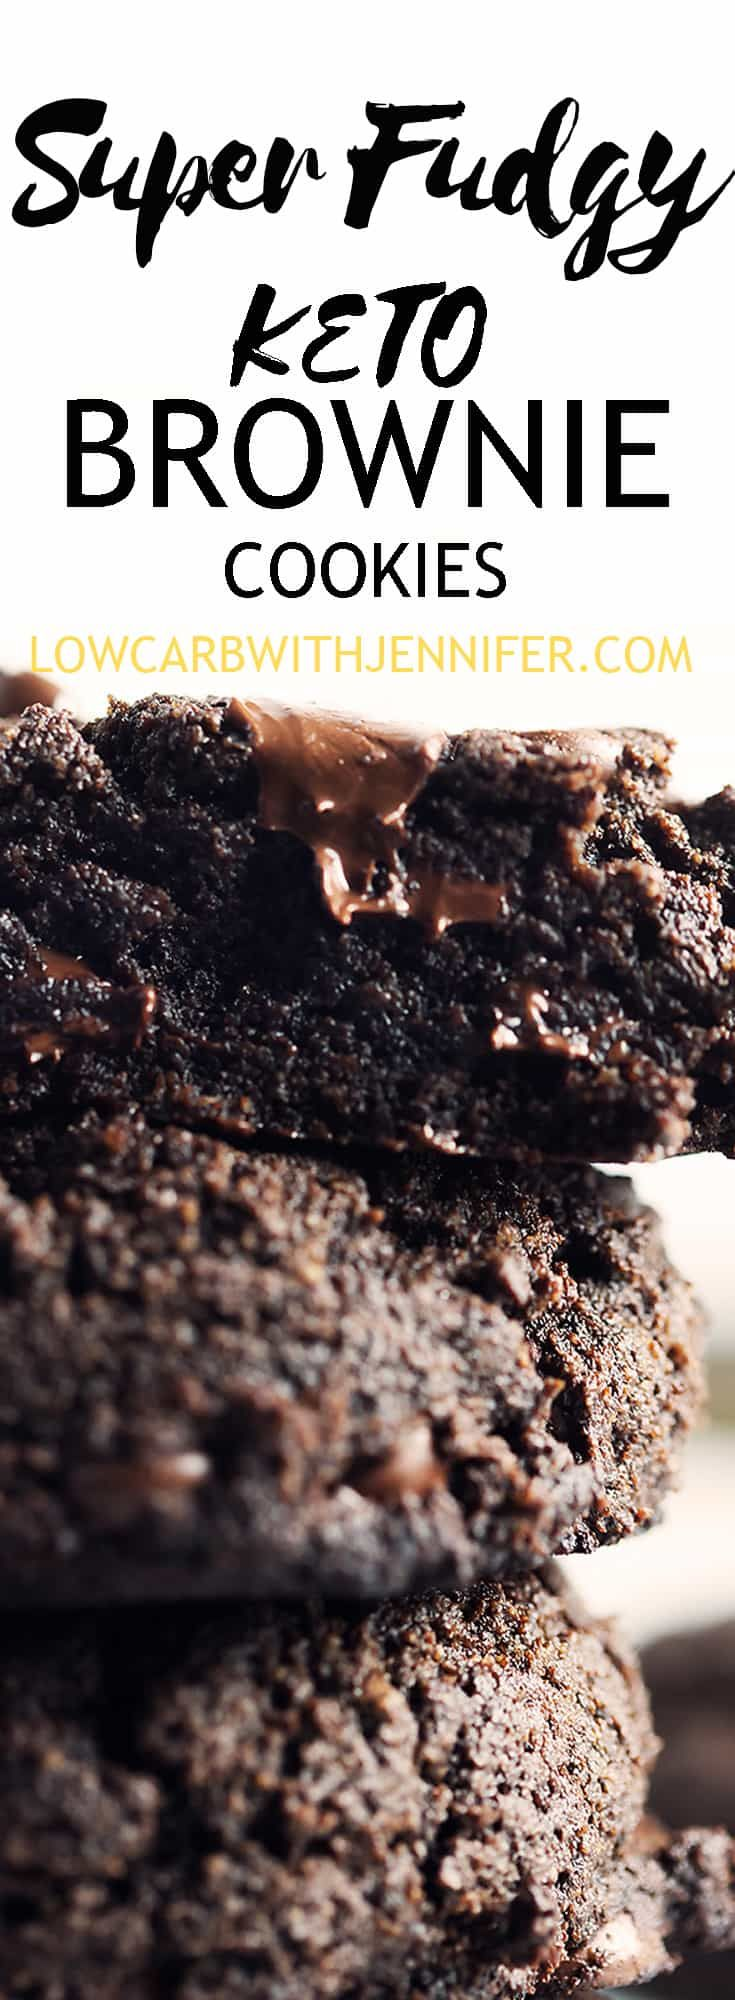 Super fudgy keto brownie cookies are double chocolate chip cookies that are so easy to make with only 1 bowl!